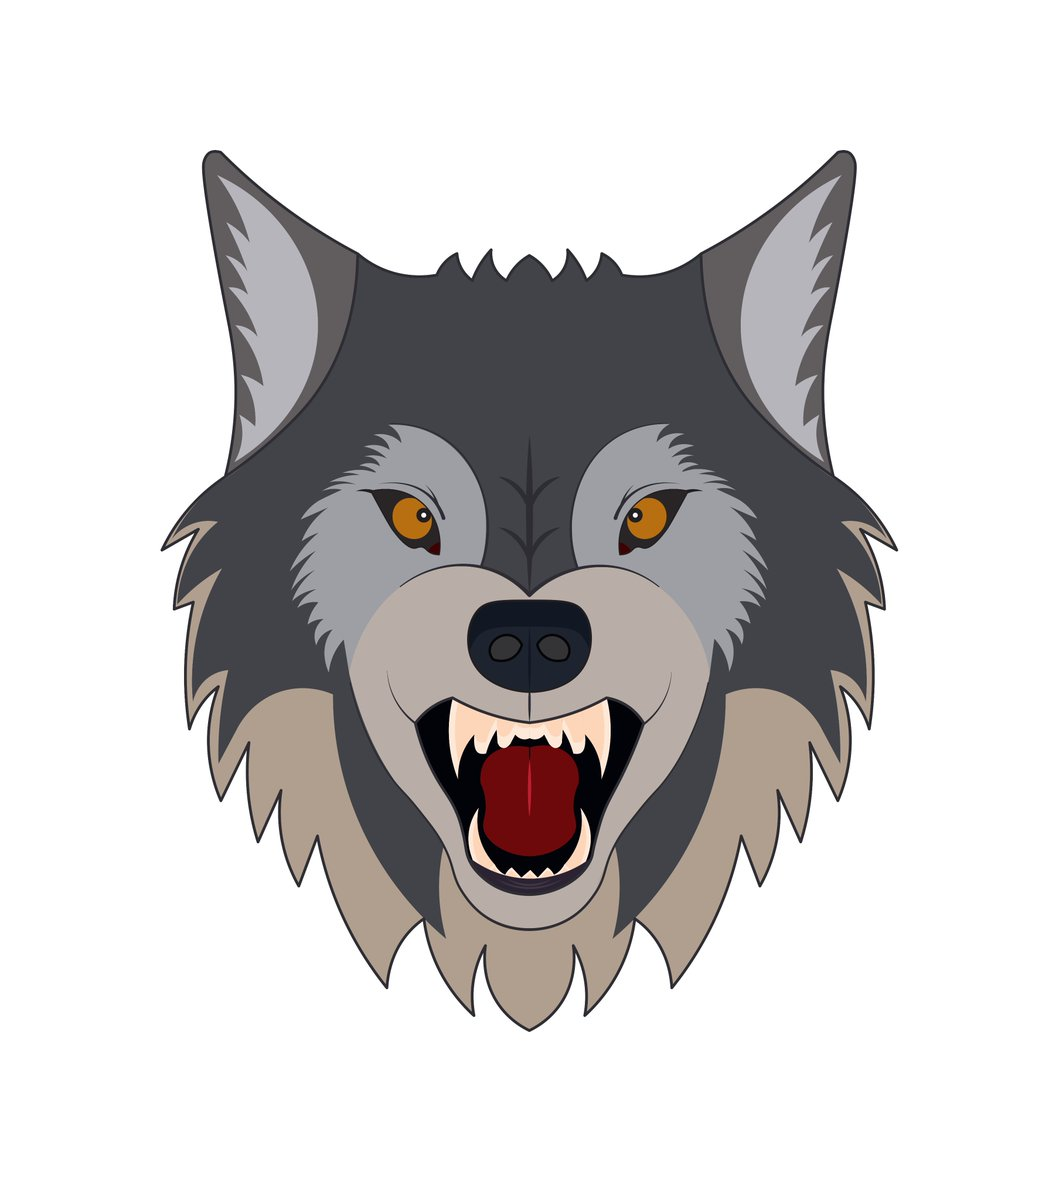 https://www.behance.net/gallery/90920951/Wolf?tracking_source=for_you_feed_user_published… #art #GraphicDesign #aristotel #artists #artistsoninstagram #wolf #Togo #togomovie